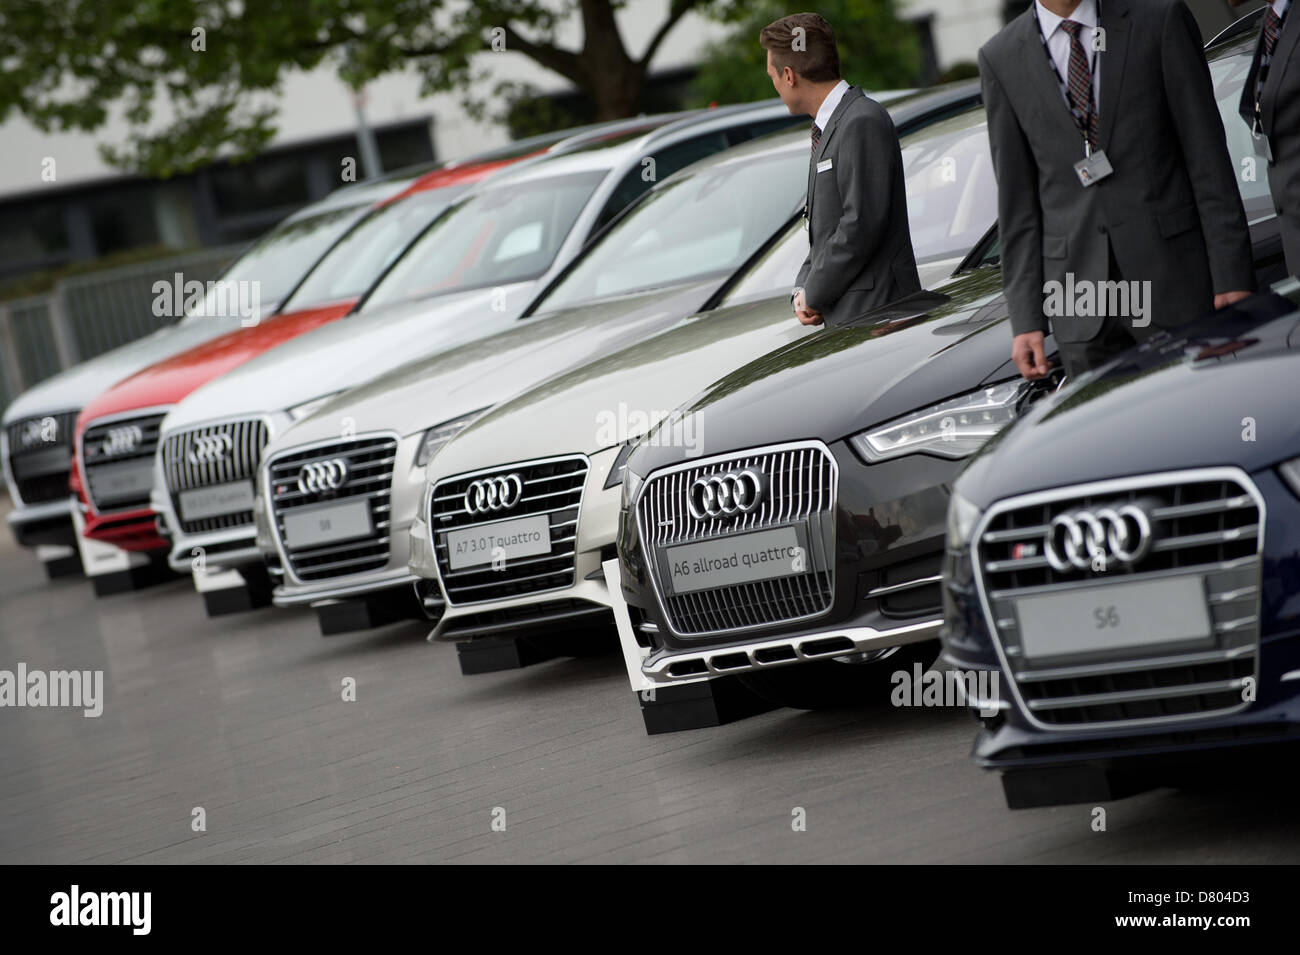 Different Models Of Audi Cars Stand In A Row During Audi S General Stock Photo Alamy